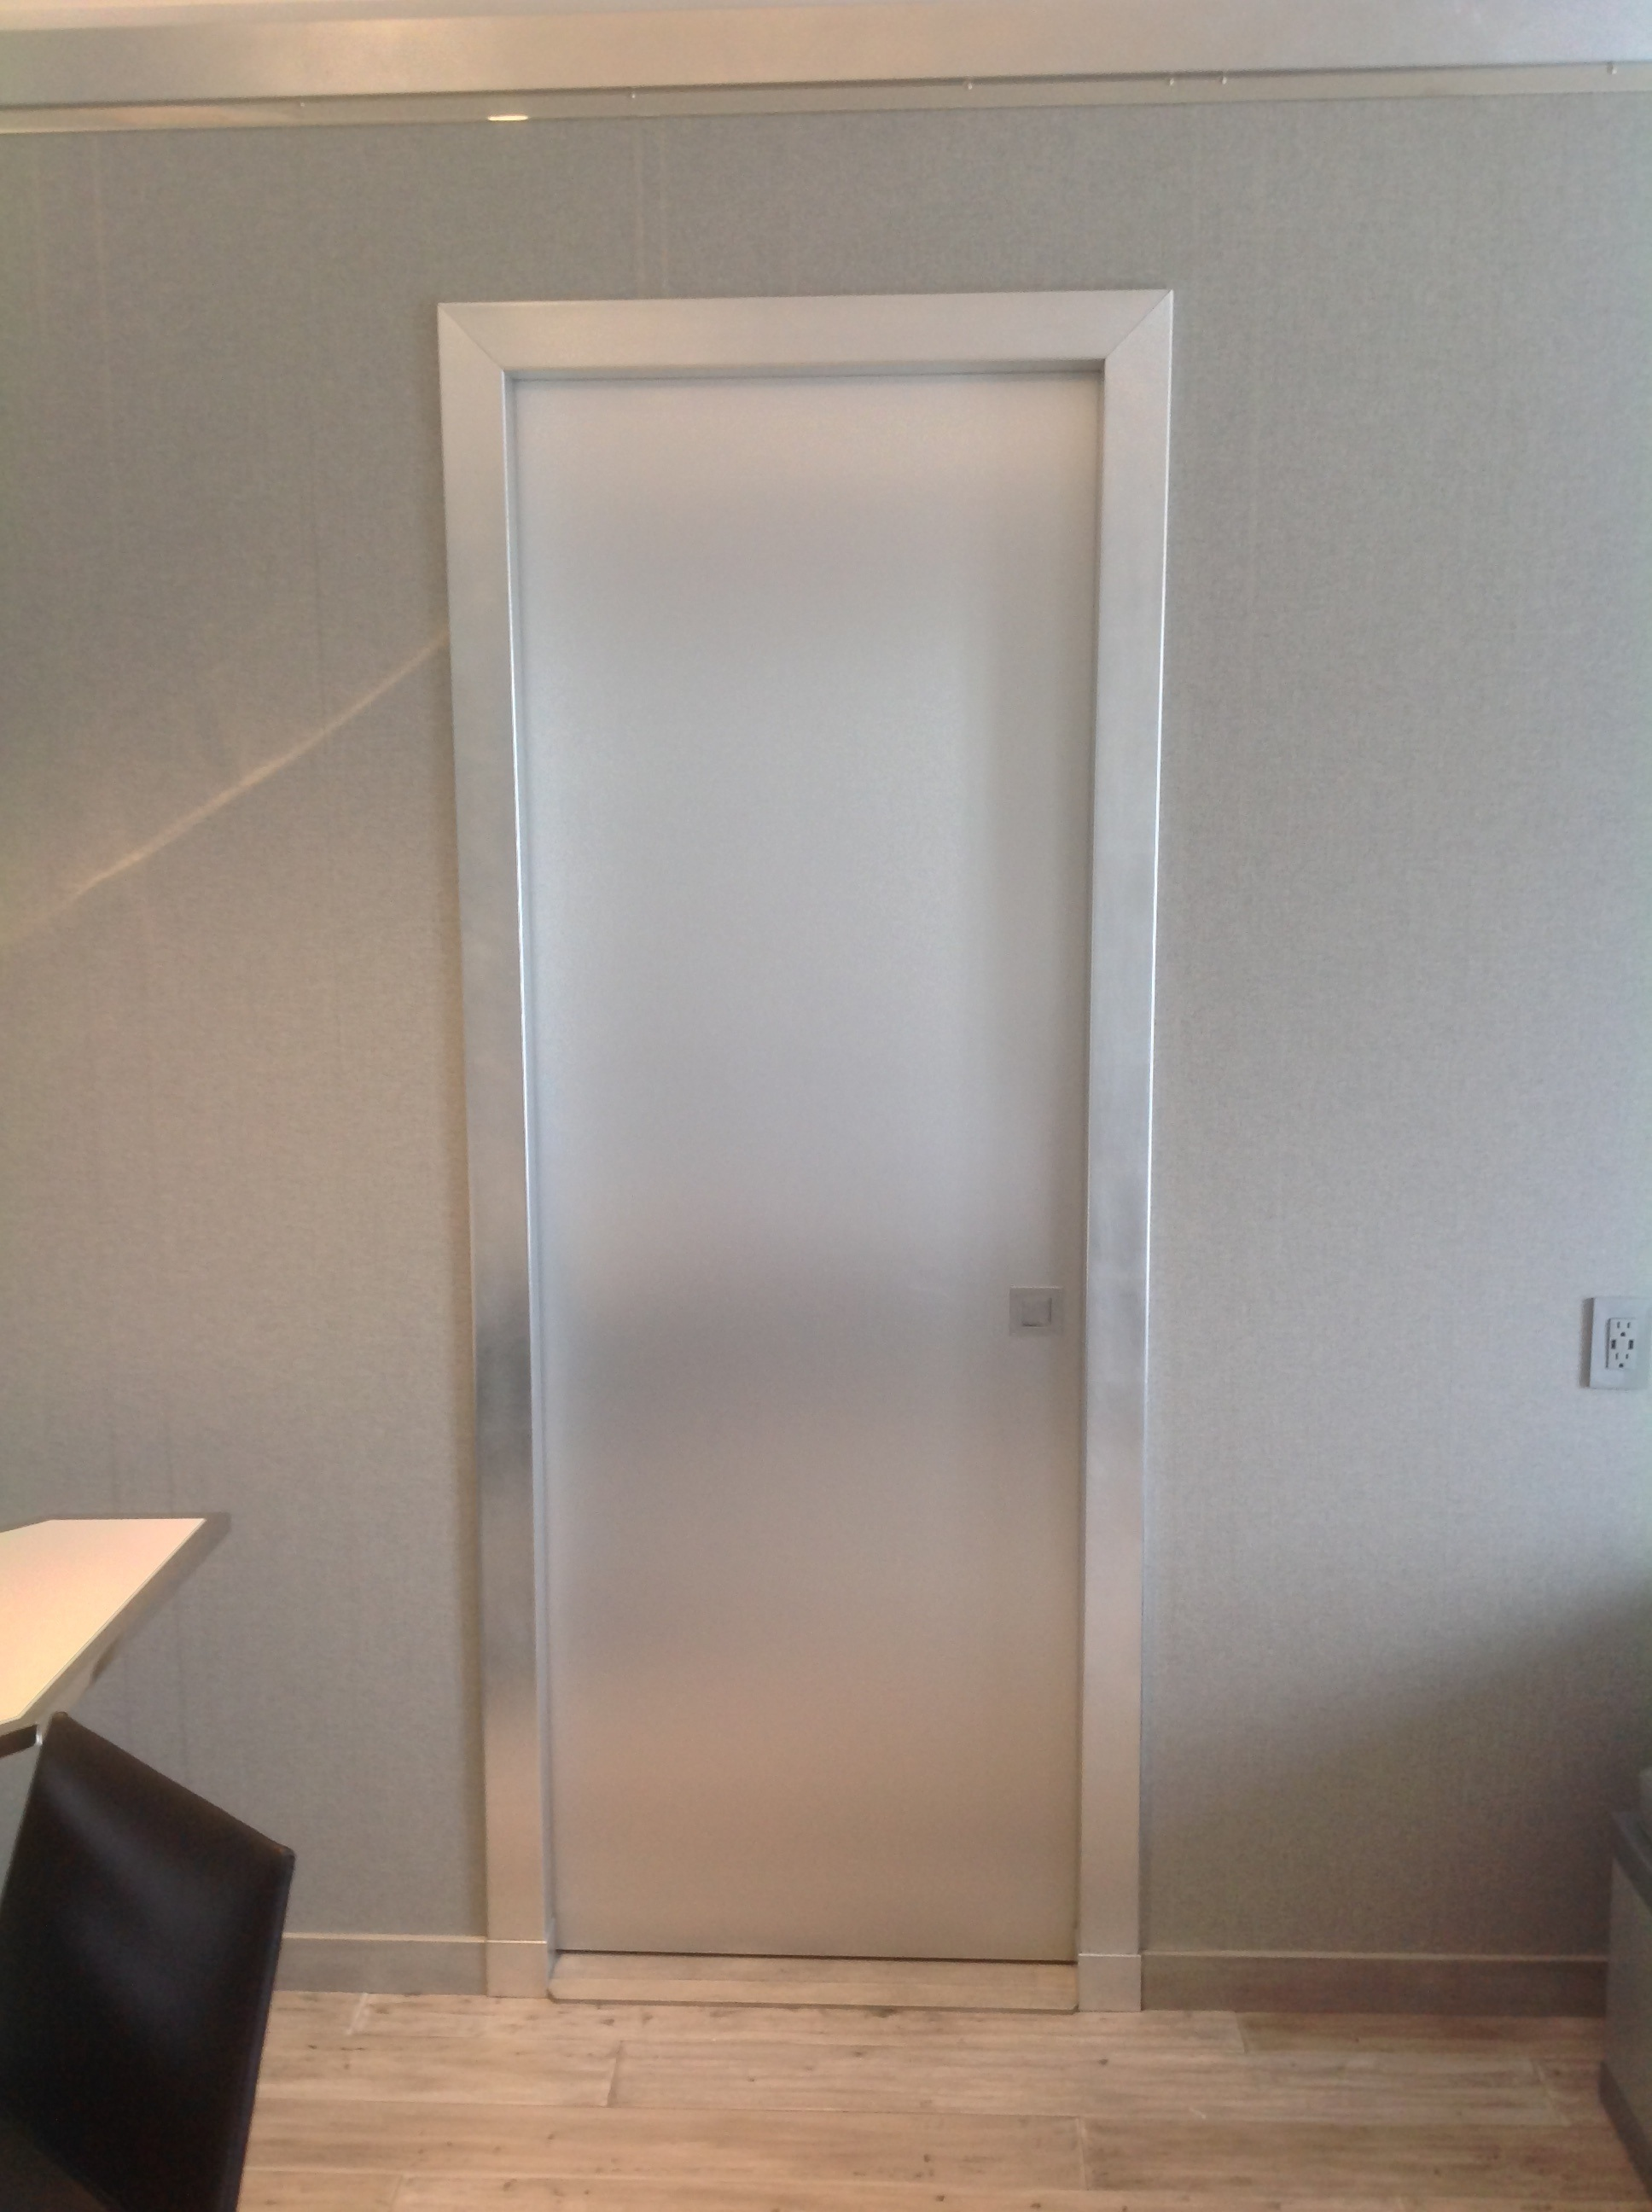 stainless steel clad pocket door in a silver leaf casing